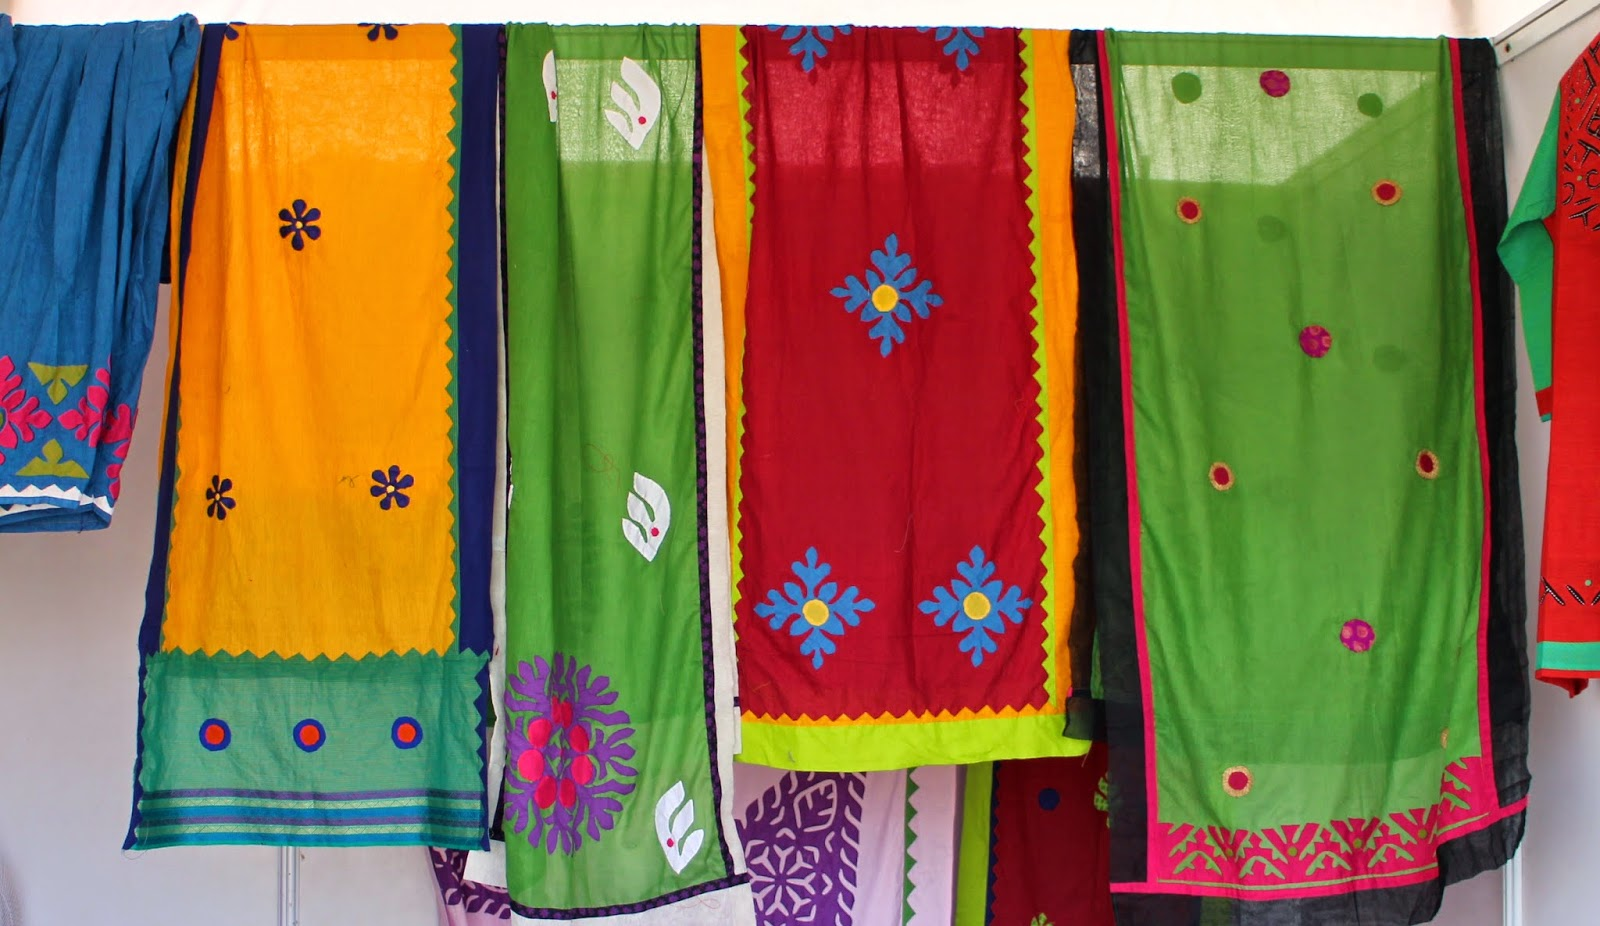 Rann Utsav, Rann of Kutch, Kutch, Gujarat, Gujarat Tourism, Handicraft, Kutch Handicraft